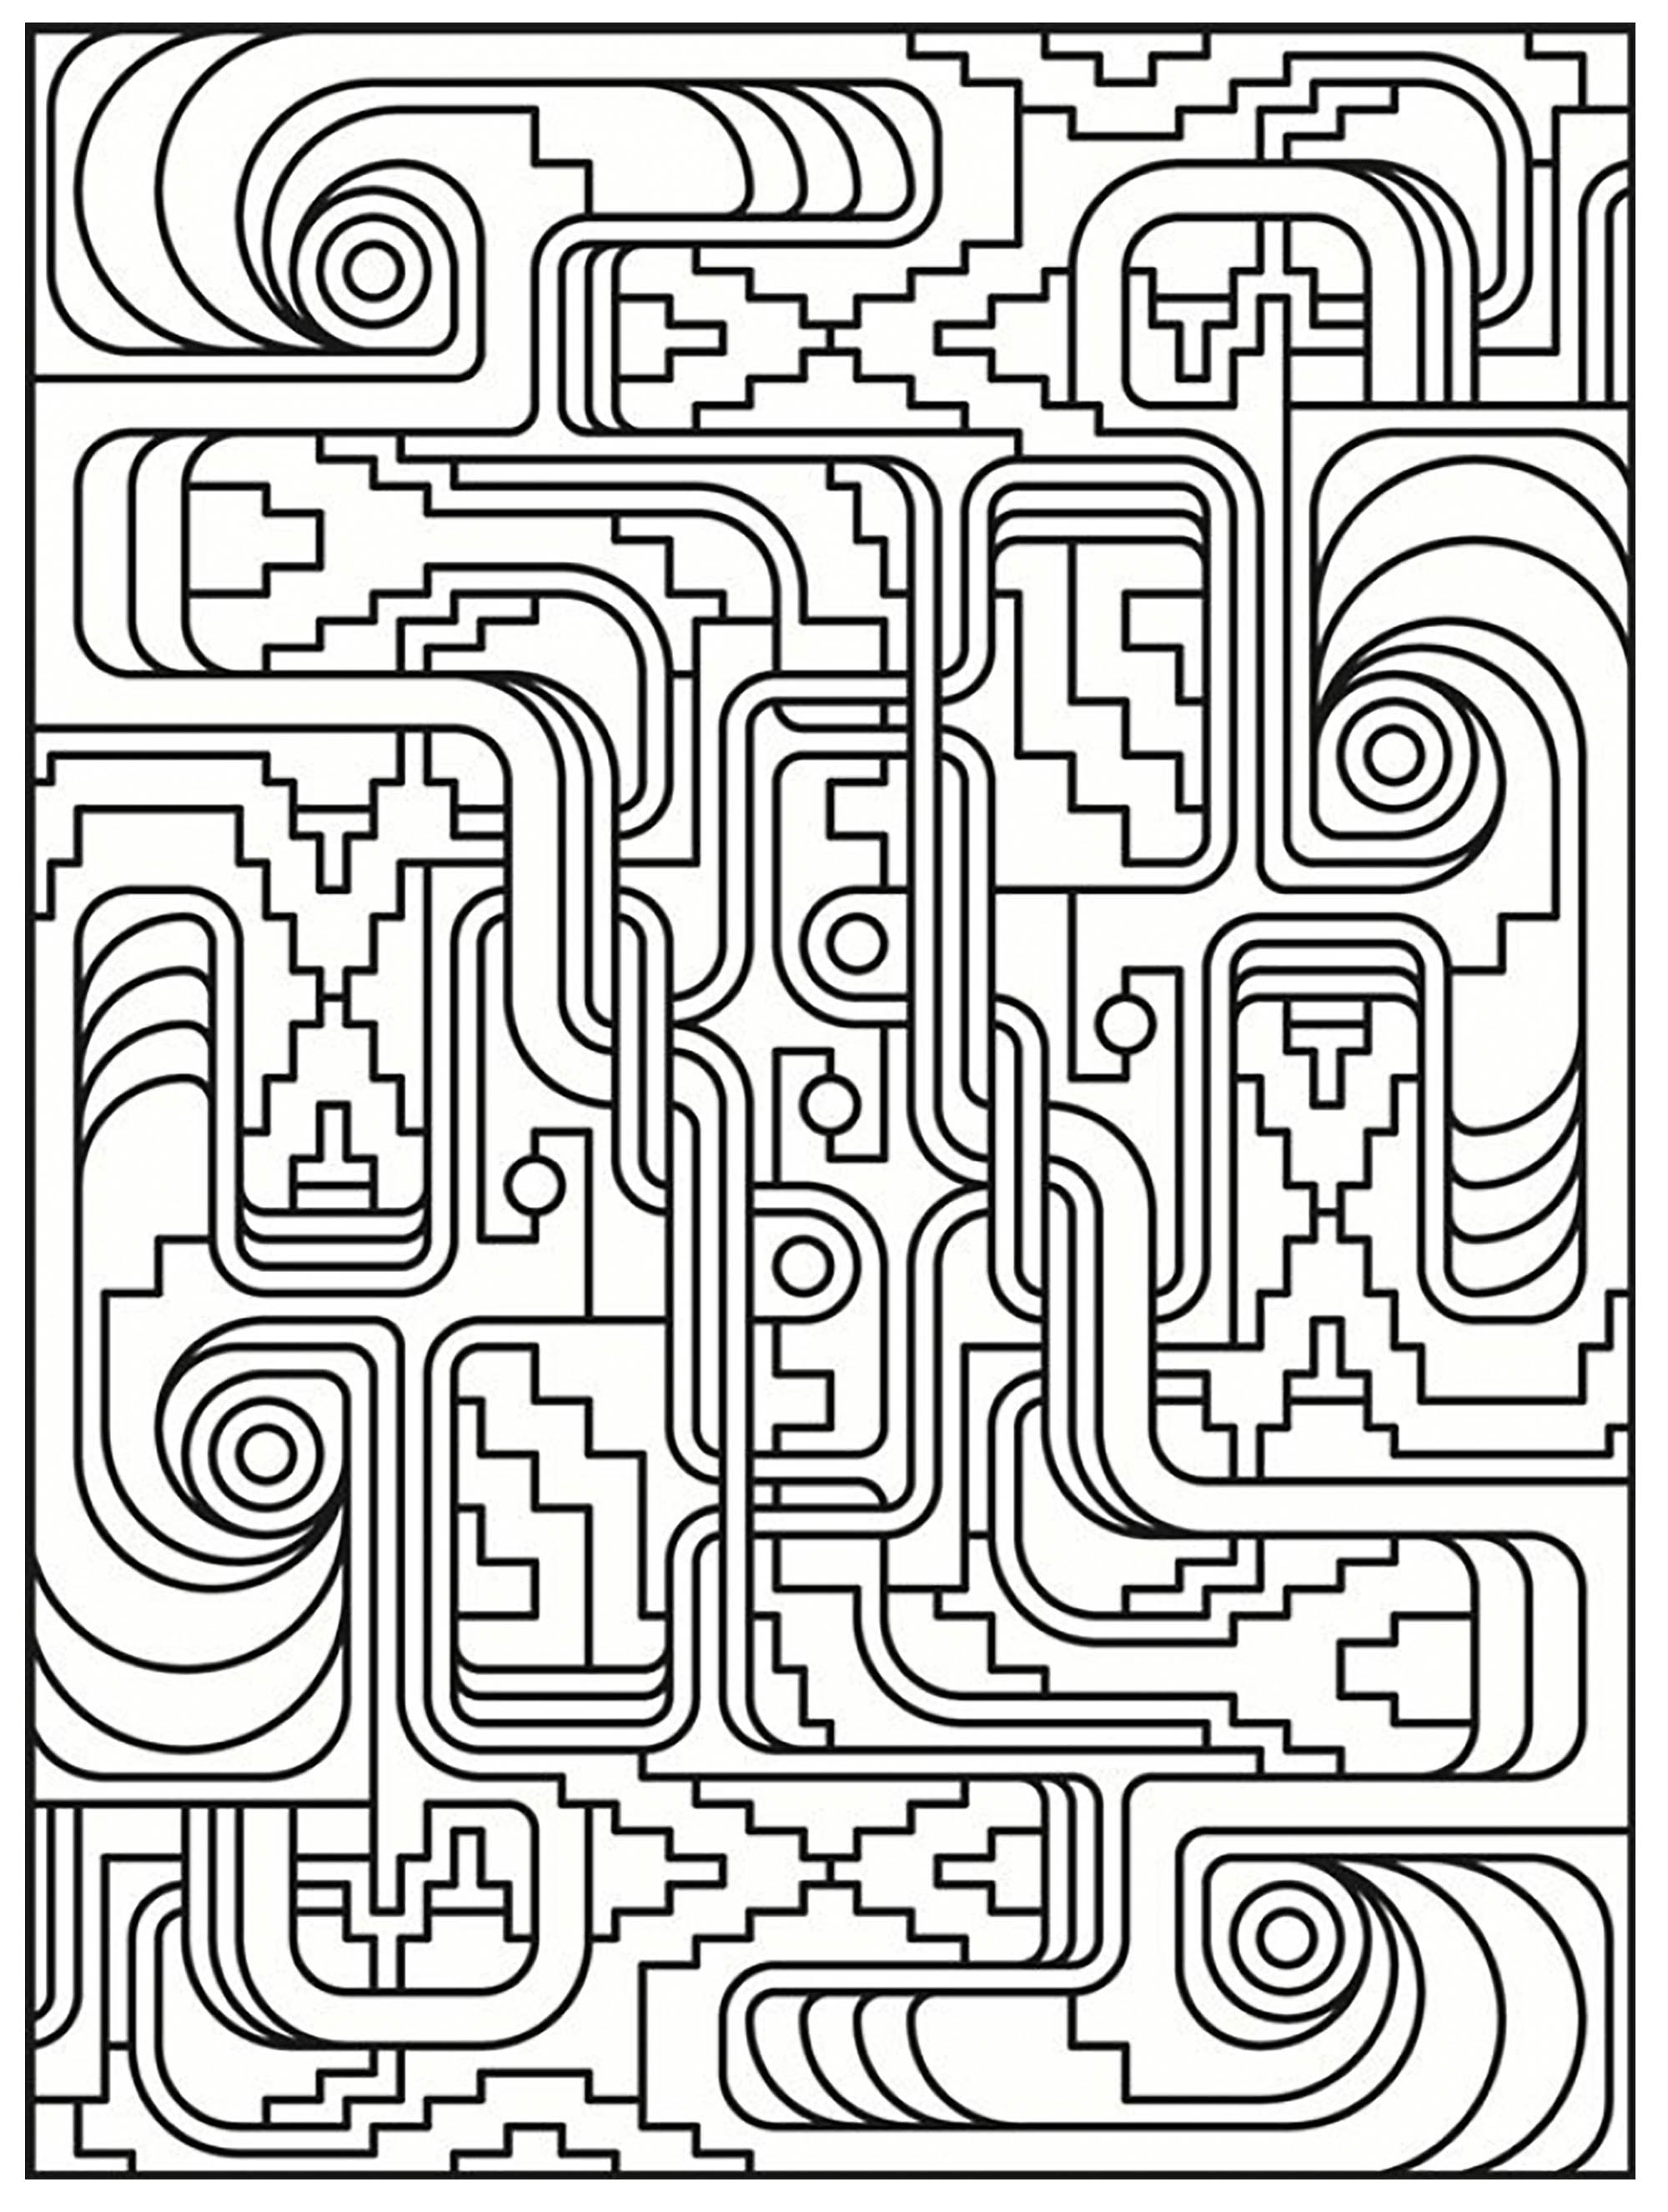 Art deco simple pattern - Art Deco Adult Coloring Pages